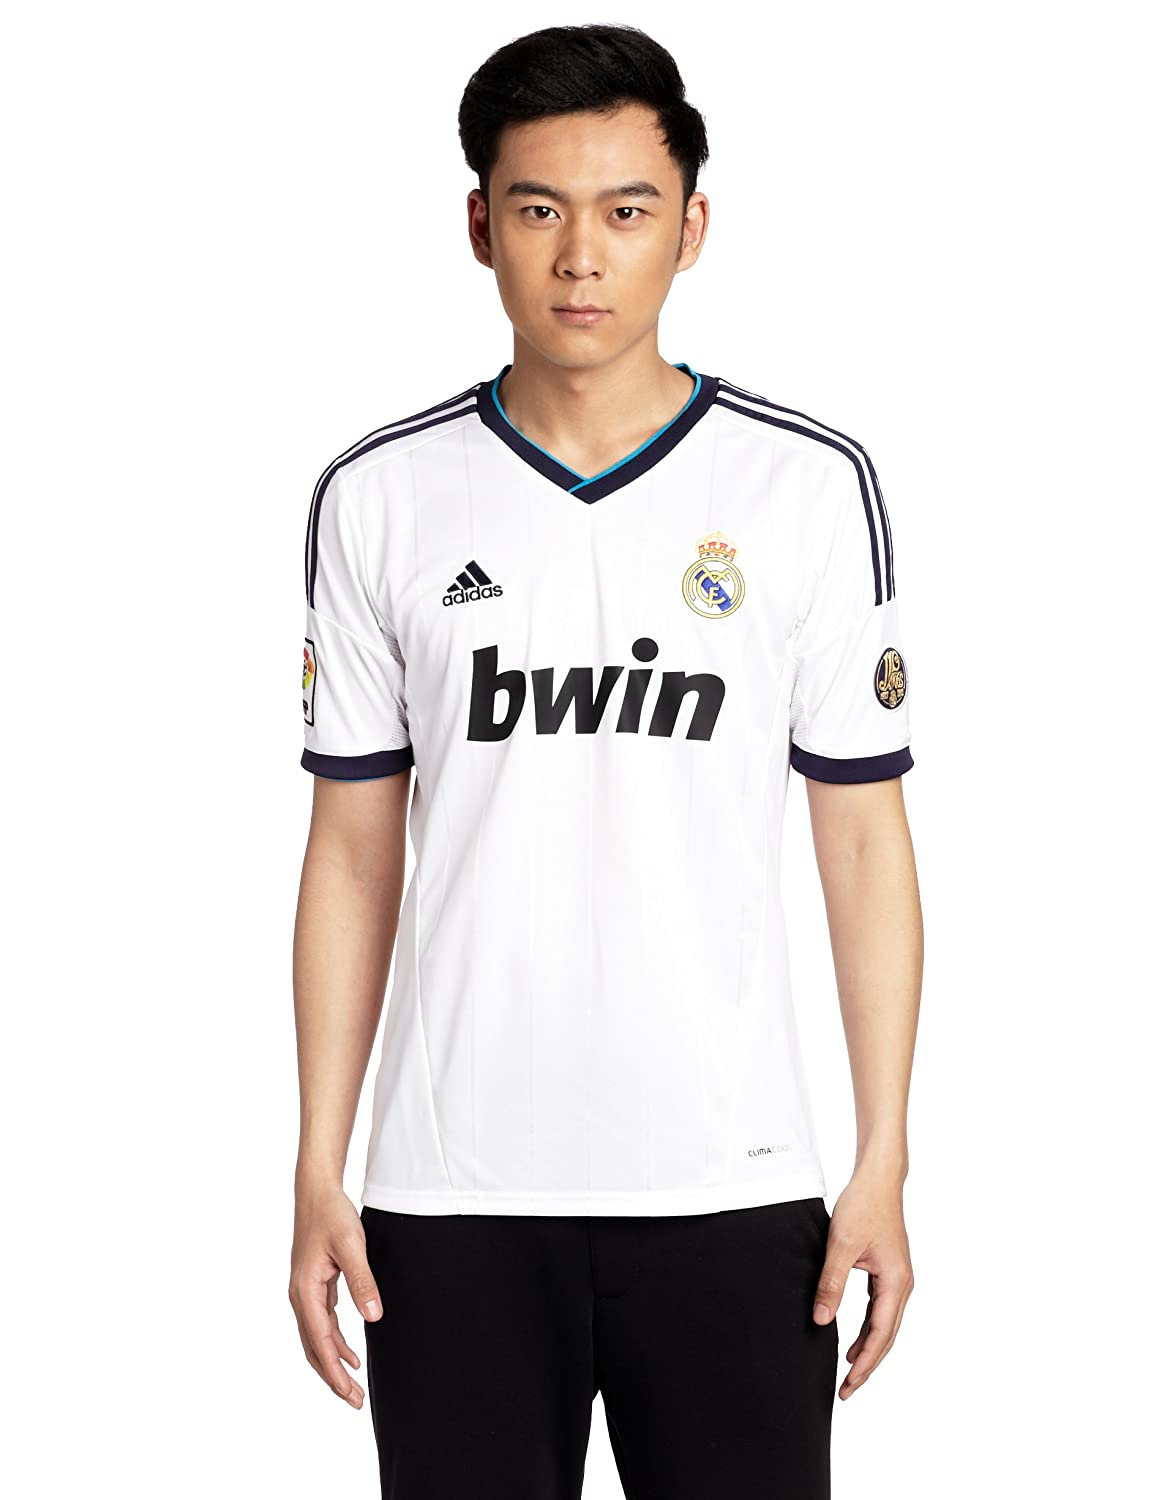 super popular cb530 542a0 Amazon.com : adidas 2012-13 Real Madrid Home Football Shirt ...